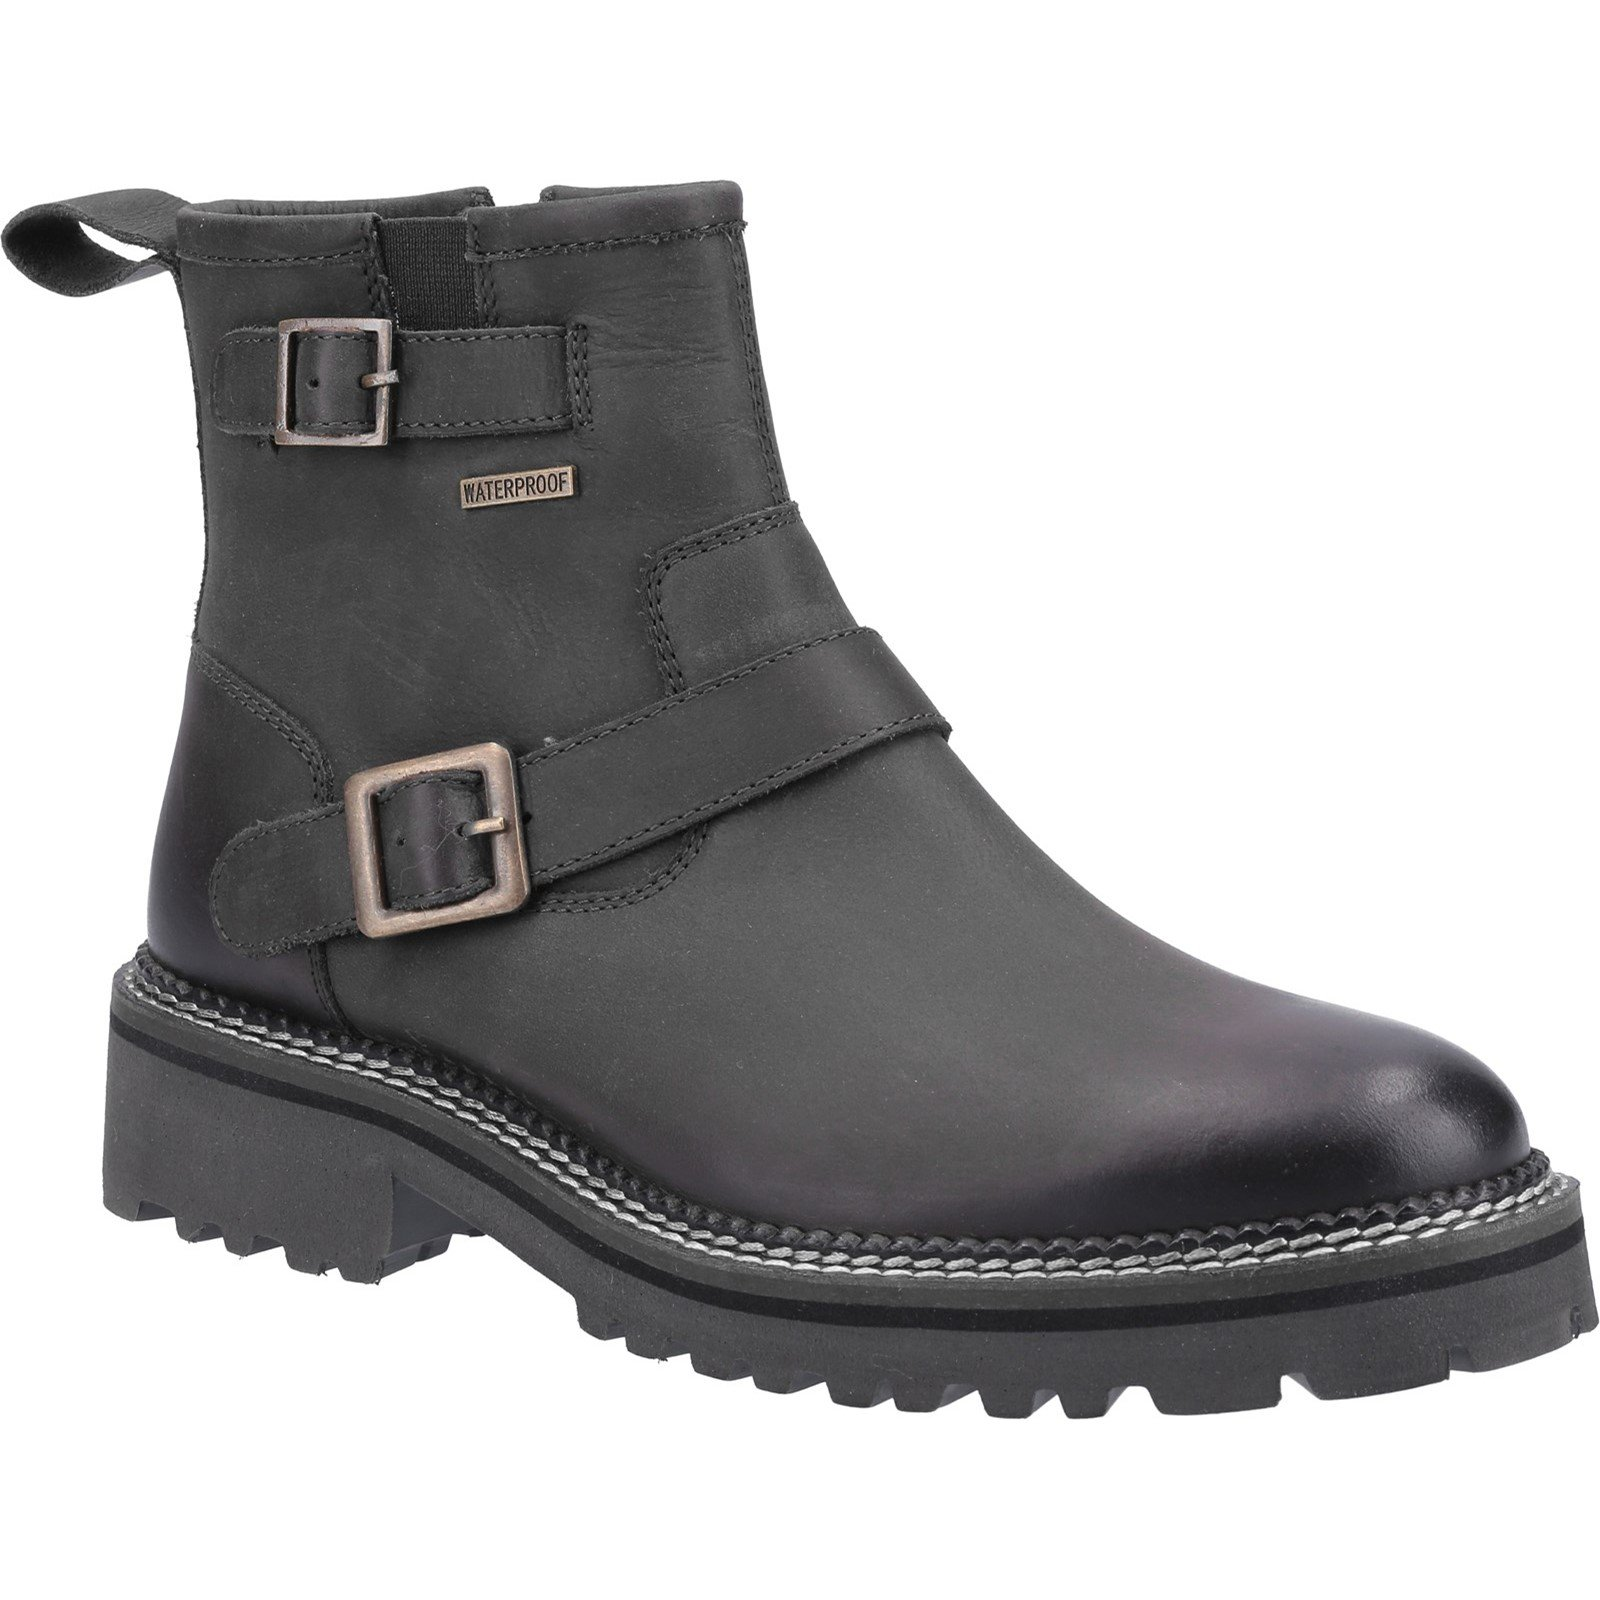 Cotswold Women's Combe Zip Ankle Boot Black 32975 - Black 6